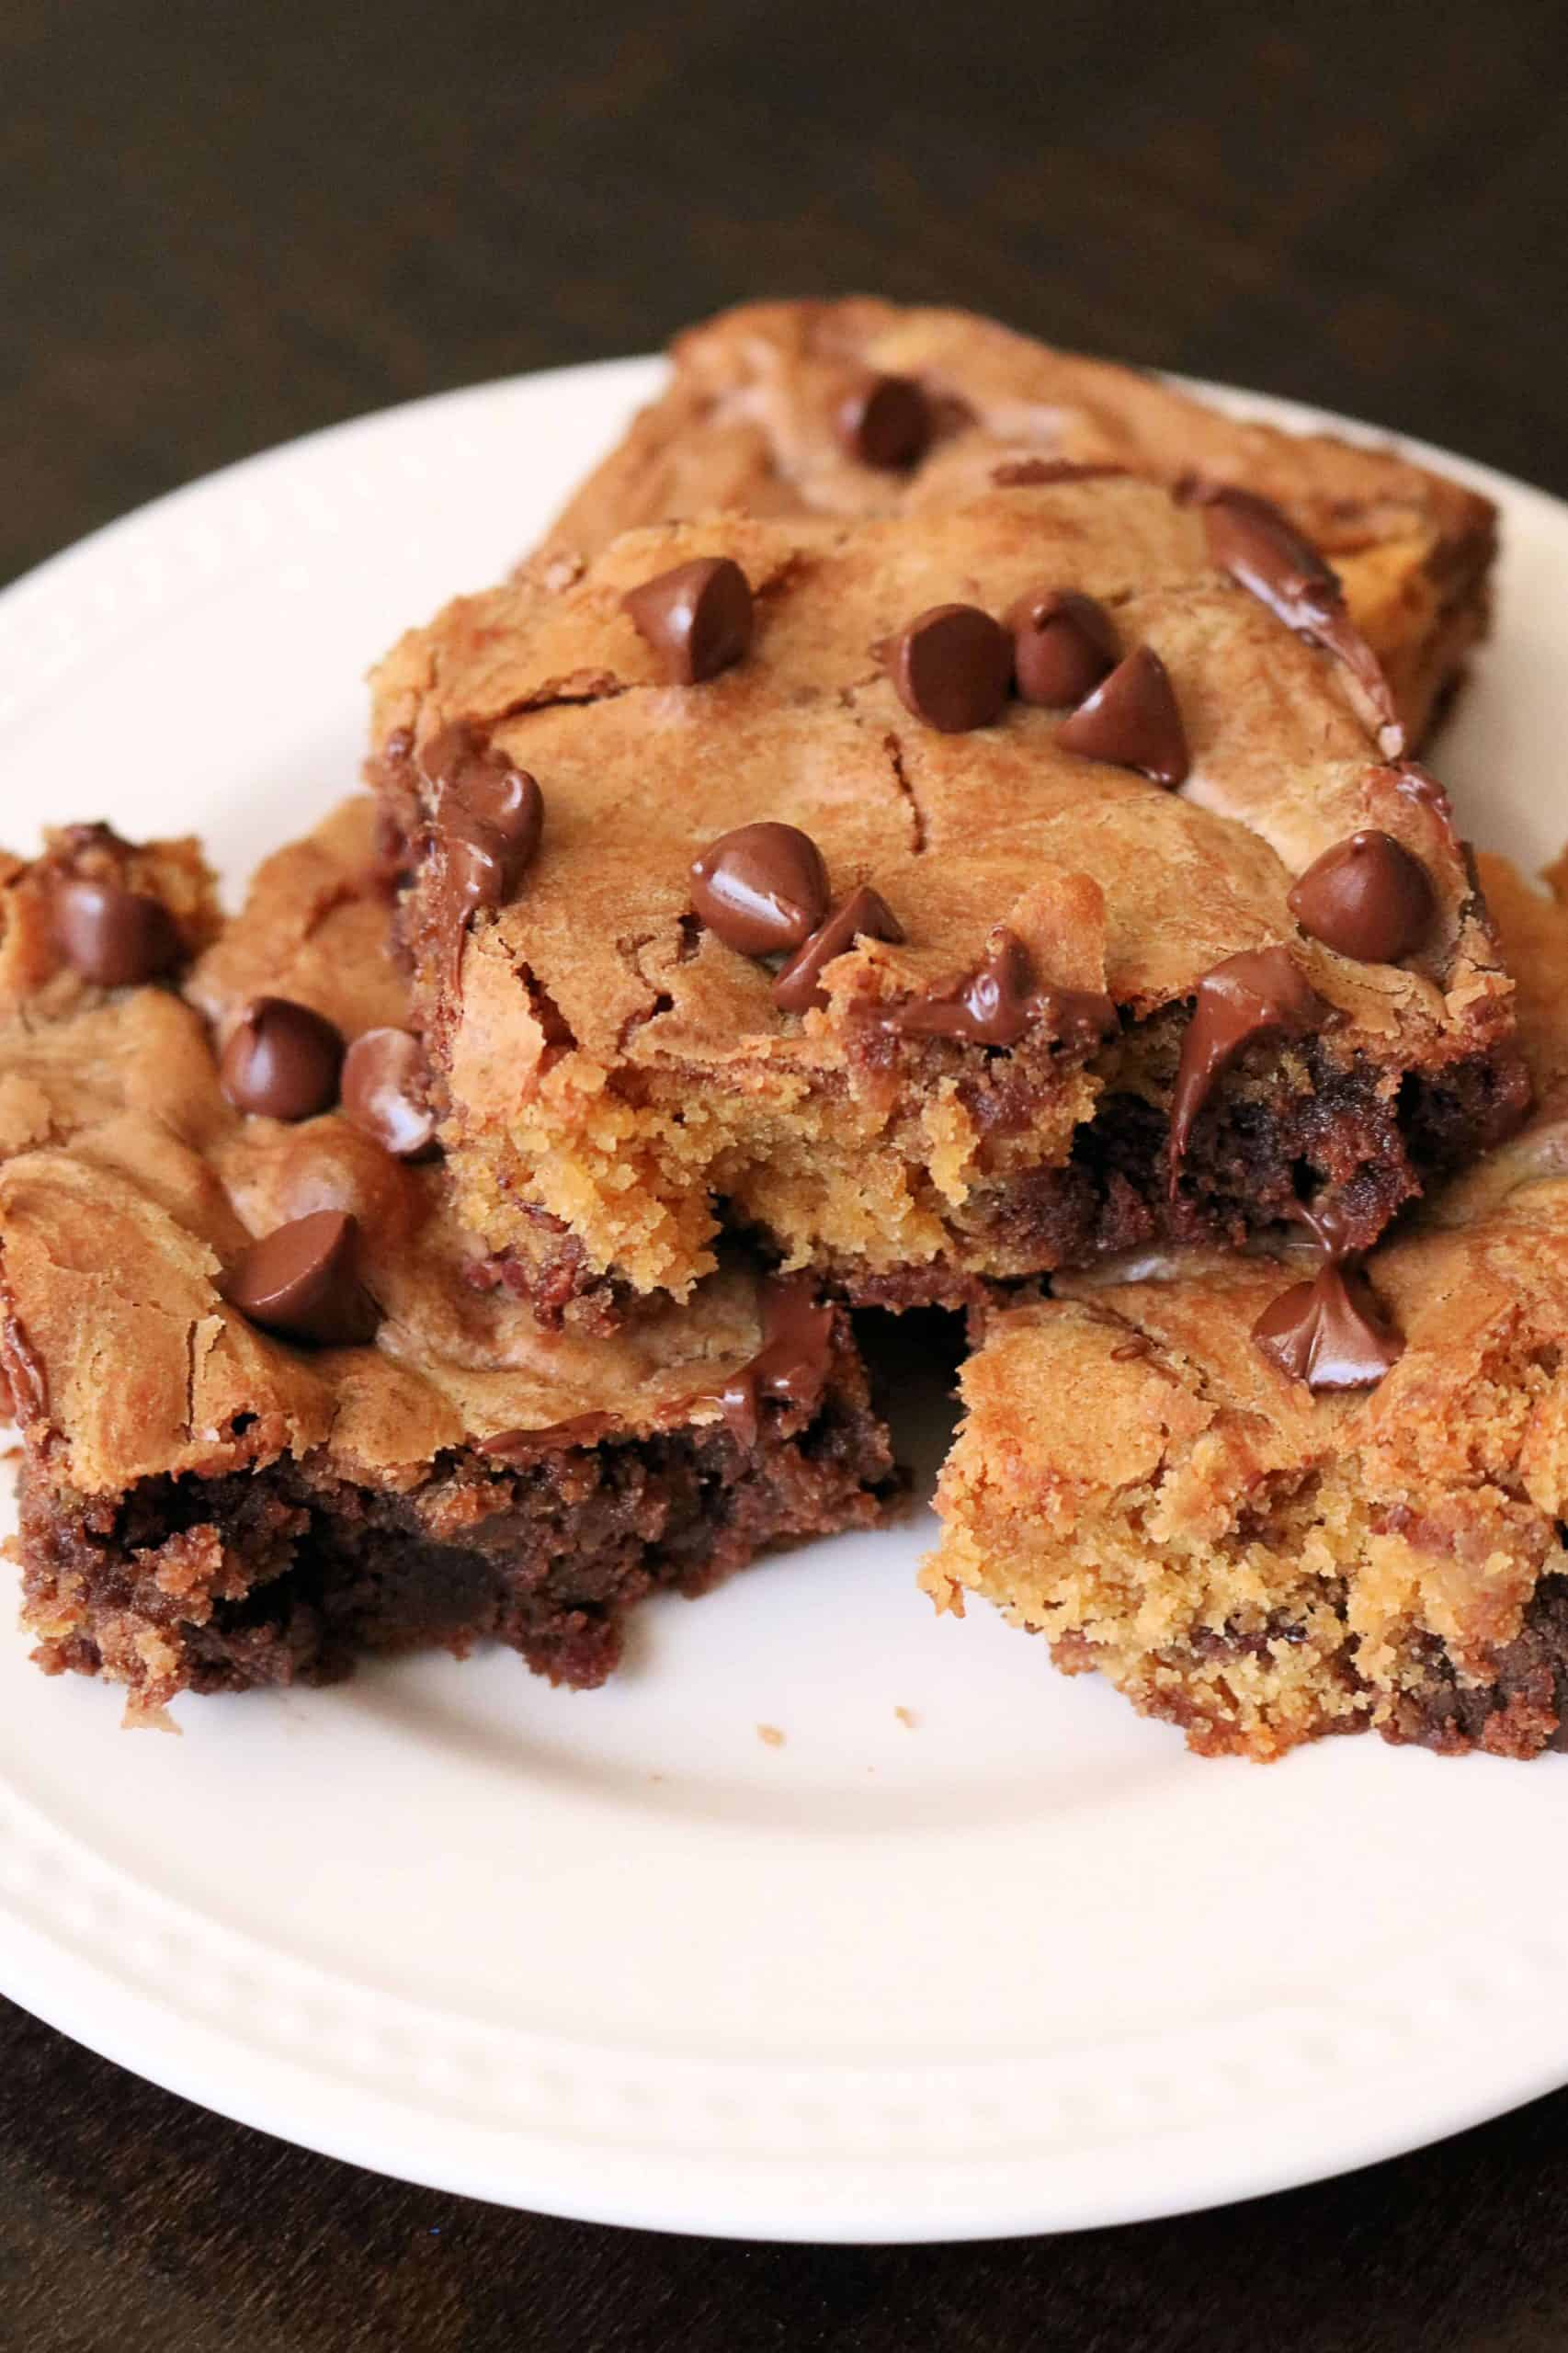 Craving cookies and brownies? Try these Easy Chocolate Chip Brookies made with a simple boxed brownie mix and homemade chocolate chip cookie dough. These easy brownie cookie bars are so delicious, soft, and fudgy! #brookies #brownies #cookies #cookiebars #browniebars #browniecookies